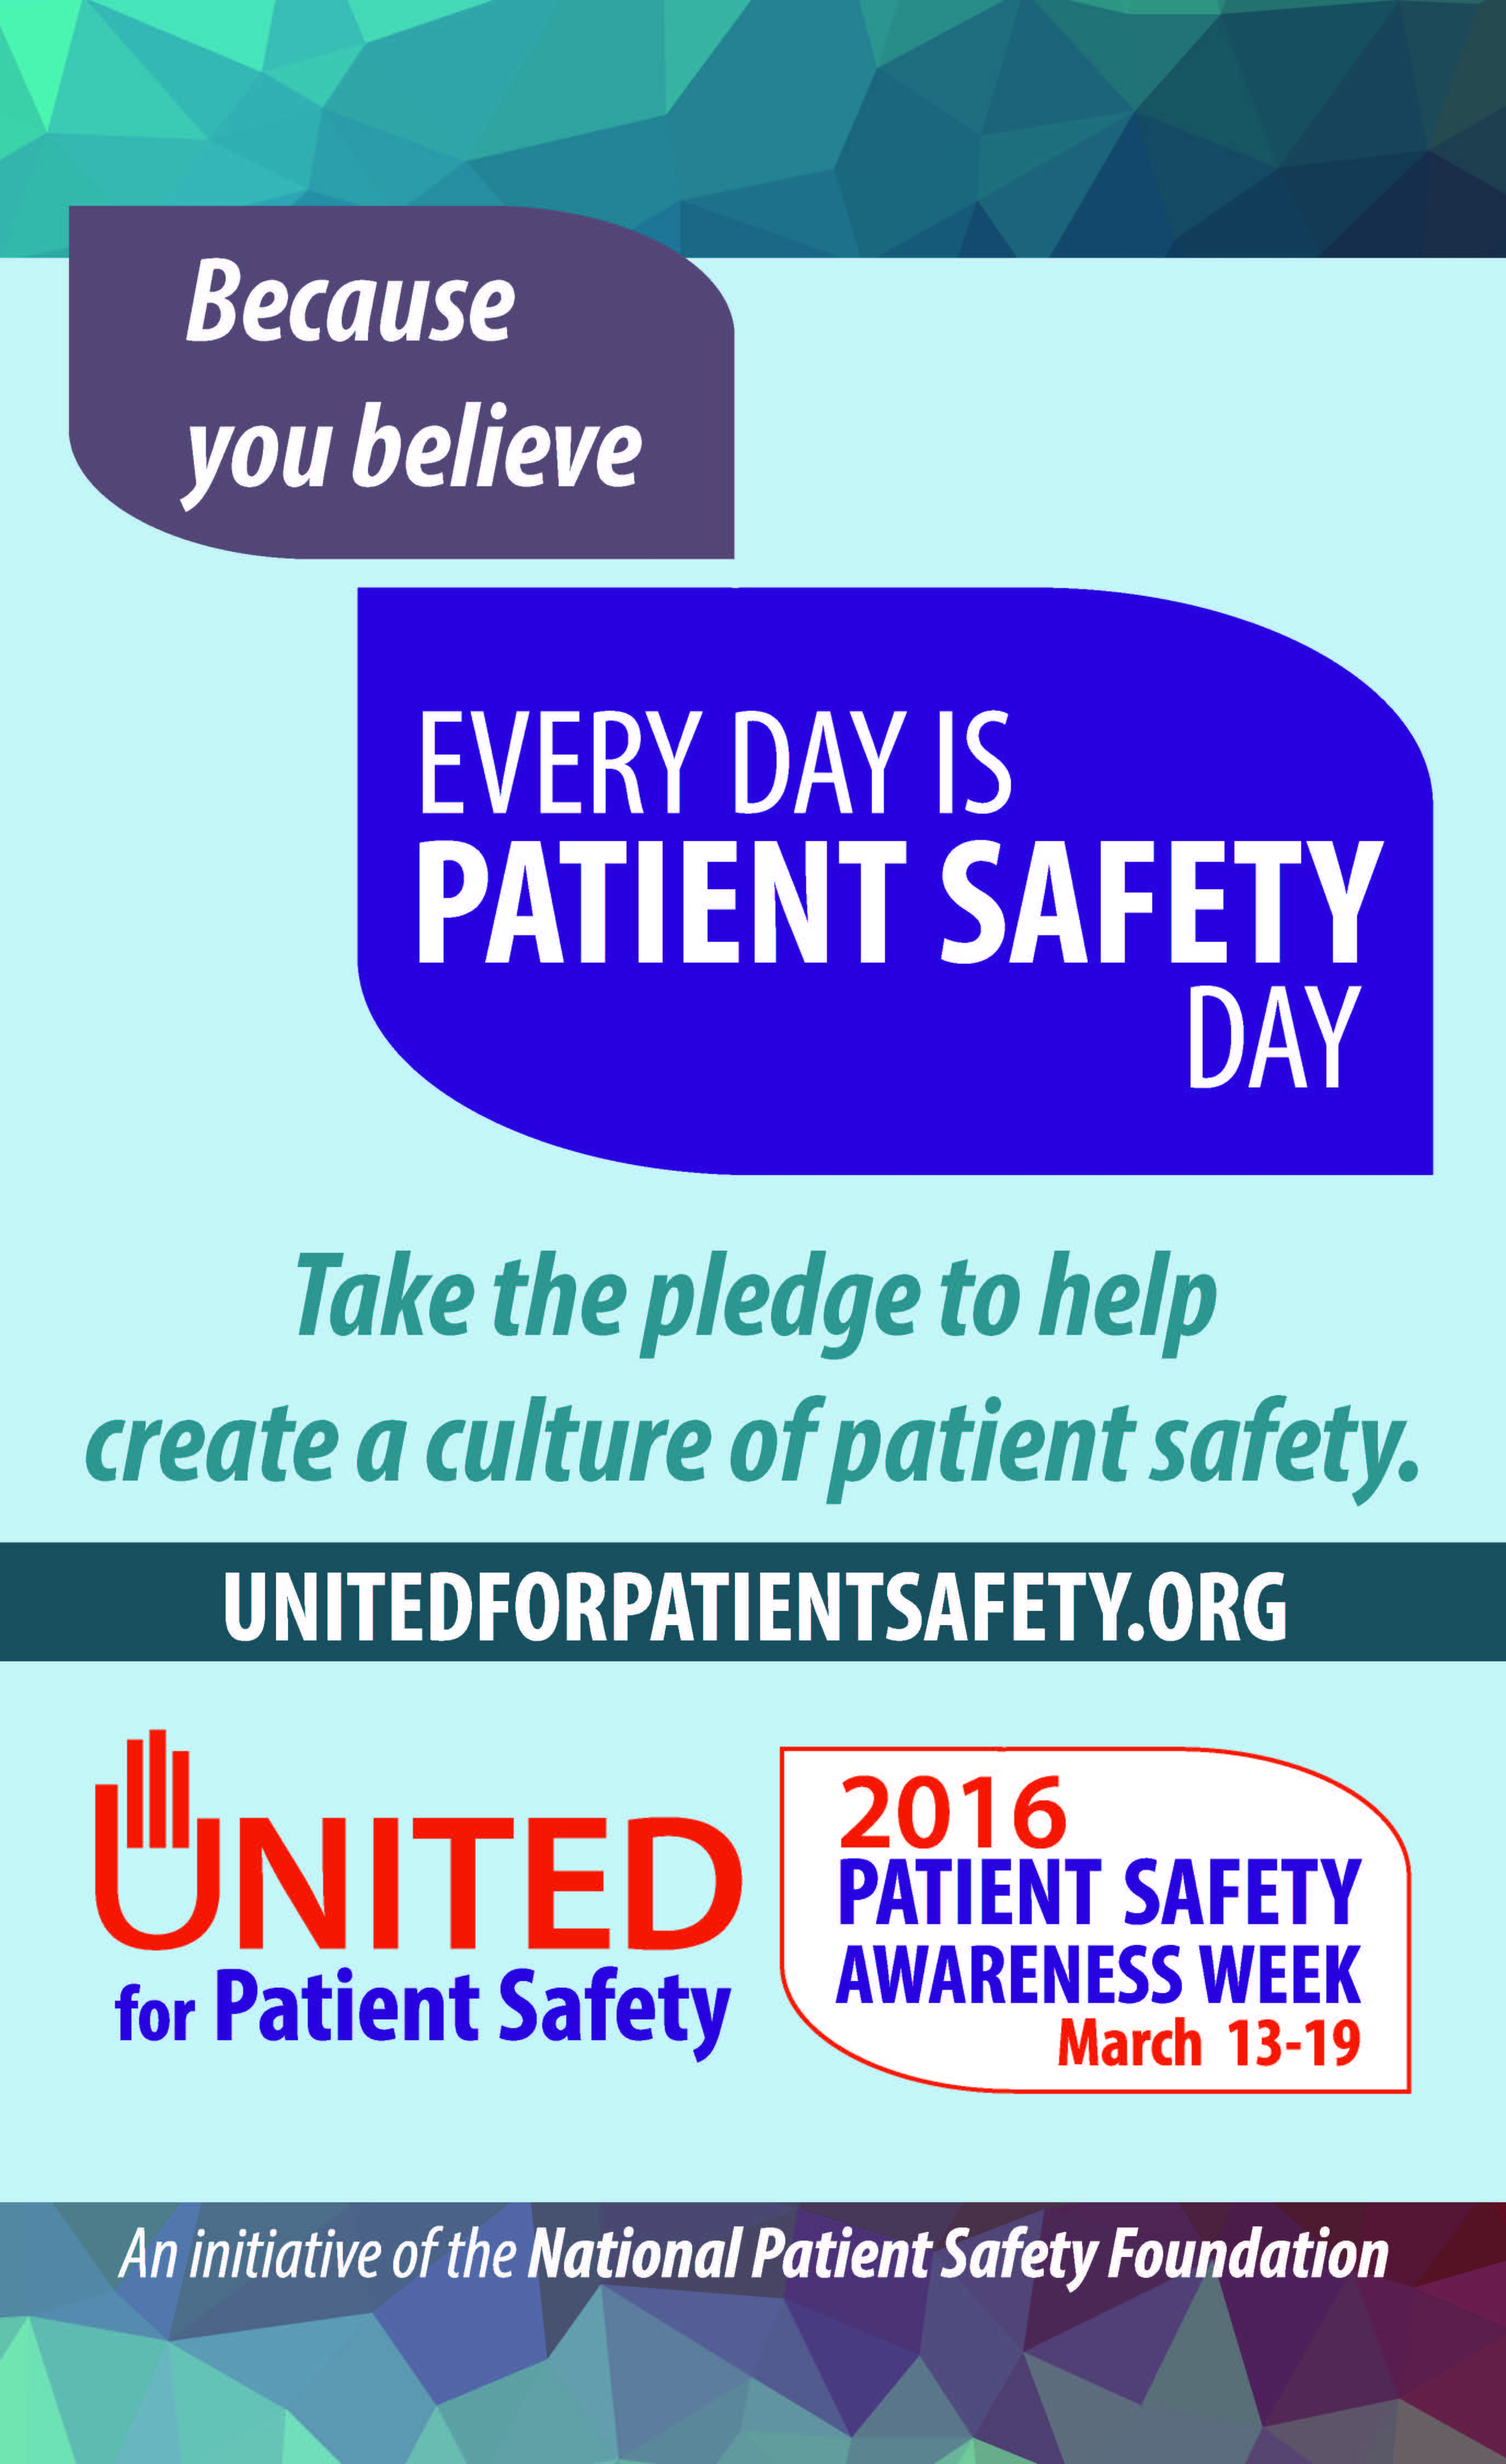 Mallinckrodt is 'United for Patient Safety' for Patient ...